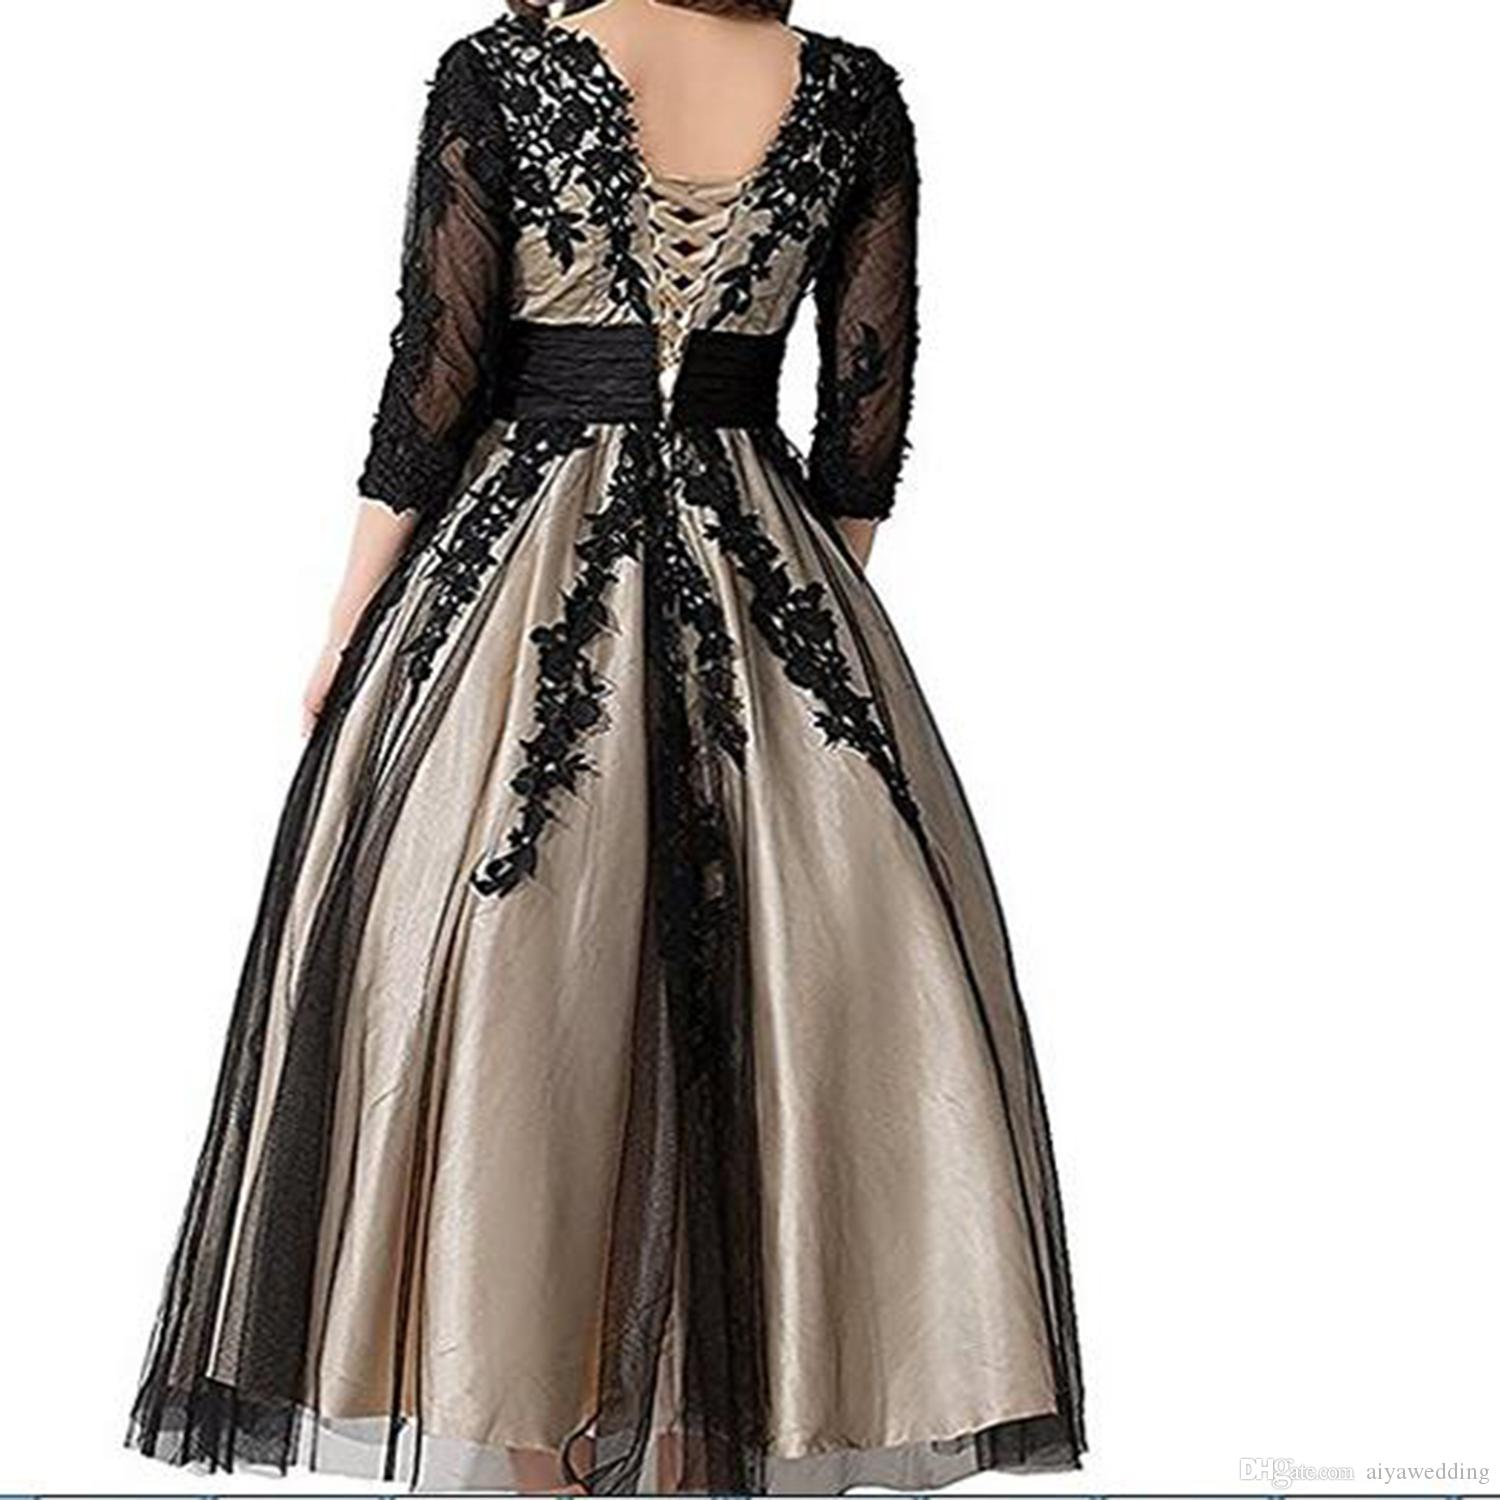 2019 Women's Long Champagne with Black Lace Tulle Plus Size A-line Tea Length Formal Evening Dresses